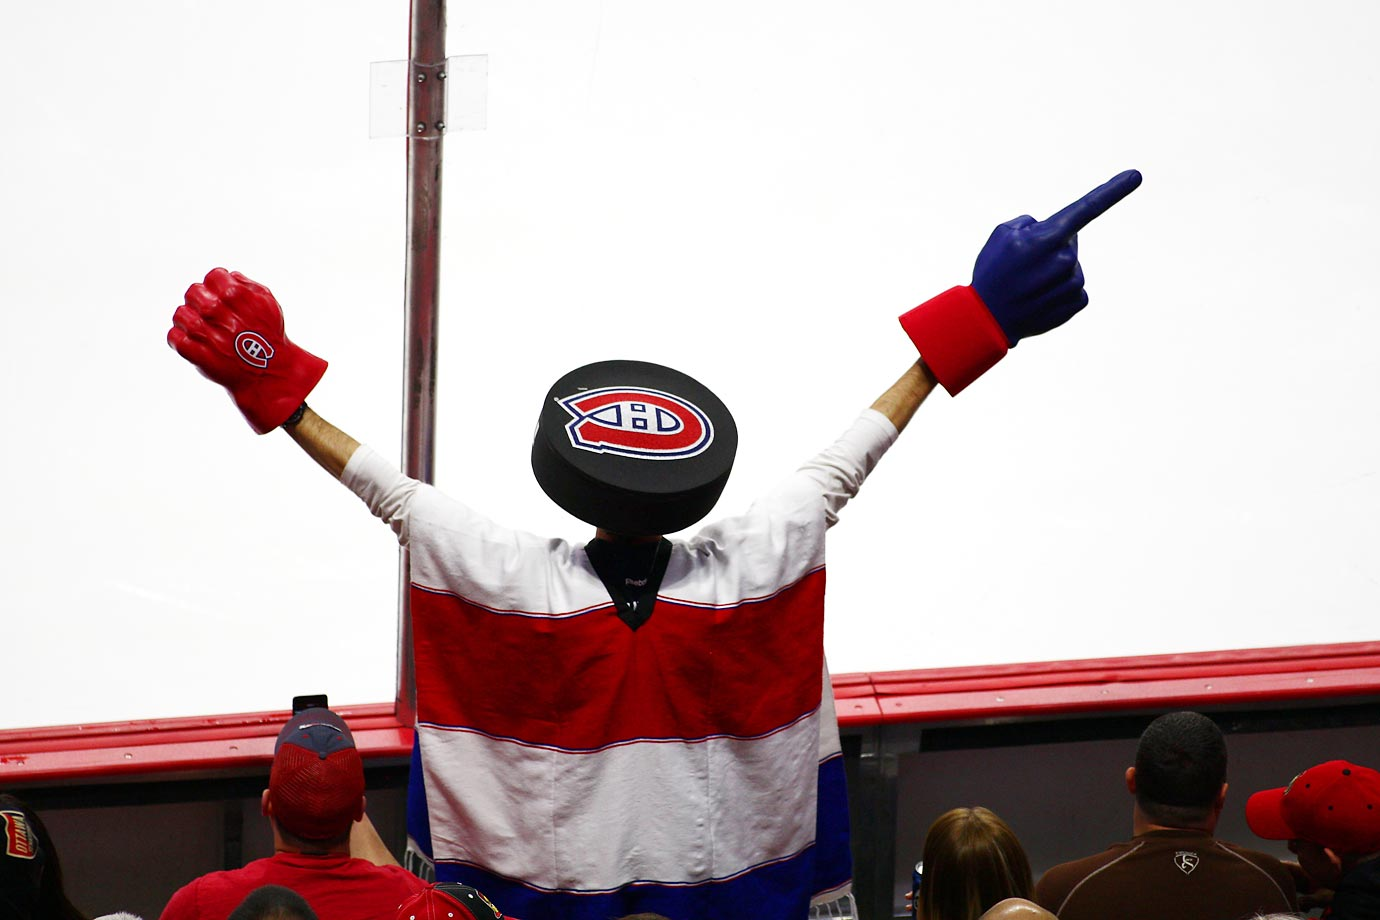 A Montreal Canadiens fan during the first round of the NHL playoffs.